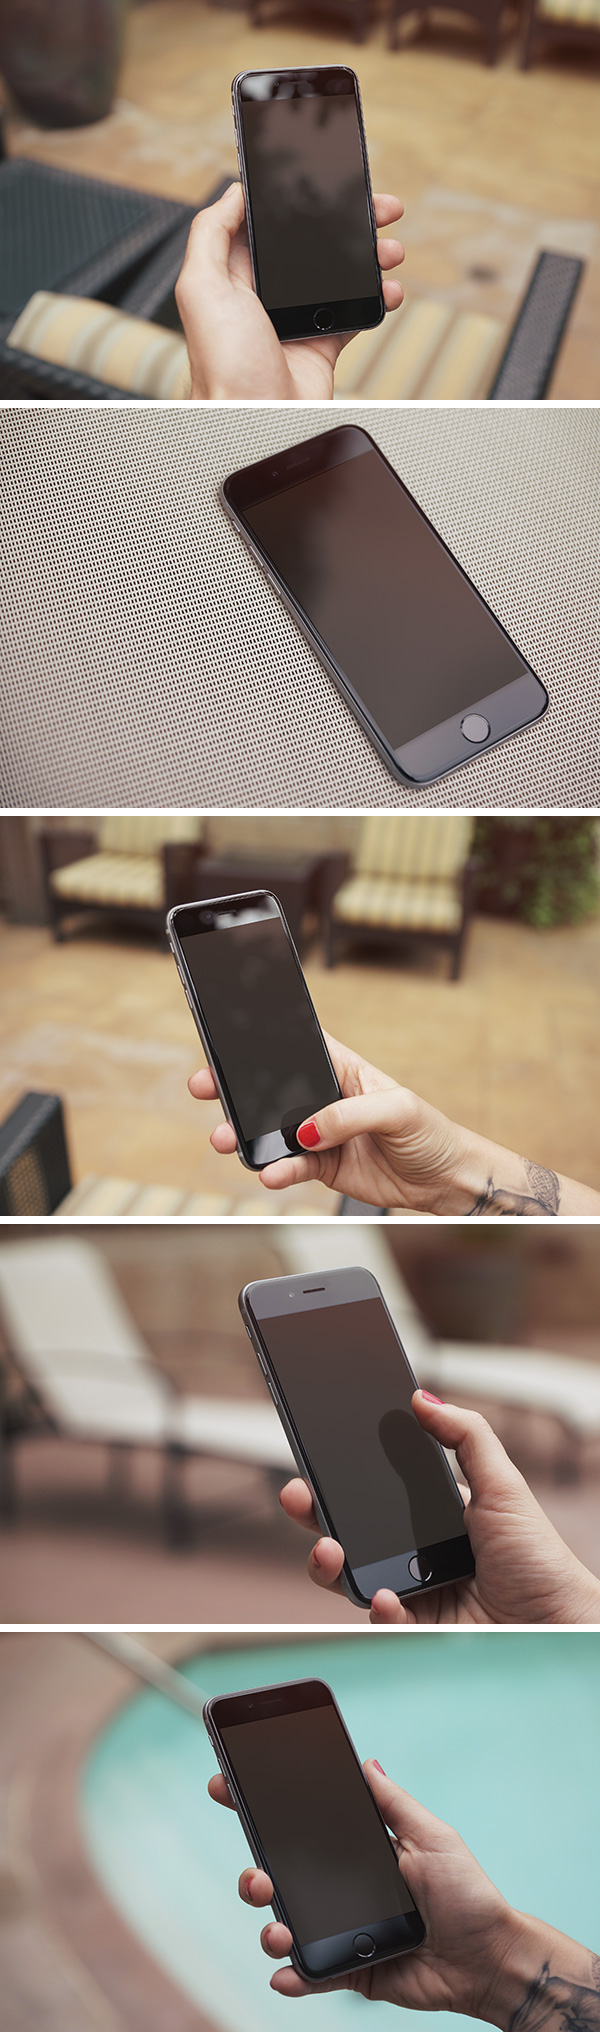 Free 5 iPhone 6 Photo MockUps